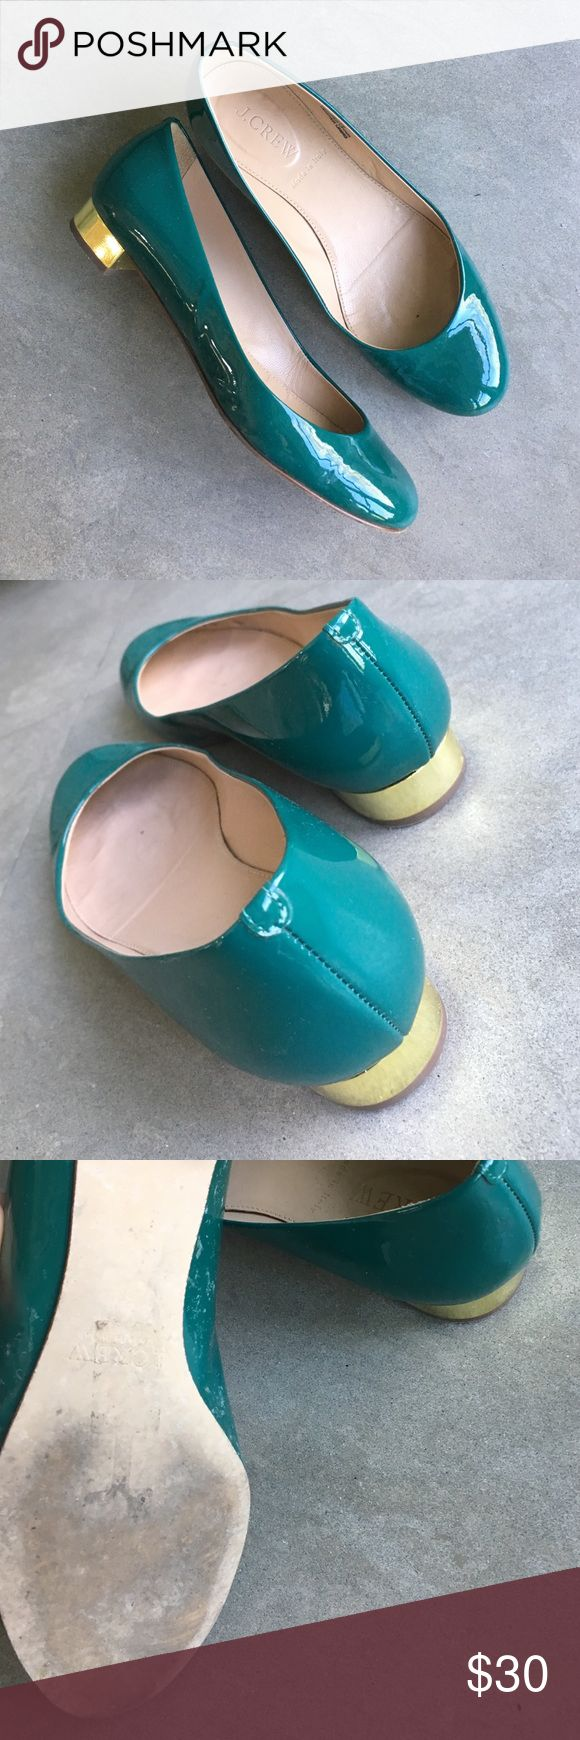 J Crew teal flats with gold heel. Sz 5.5 J crew teal leather flats with cute chunky gold heel. Size 5.5. Worn only a few times. J. Crew Shoes Flats & Loafers